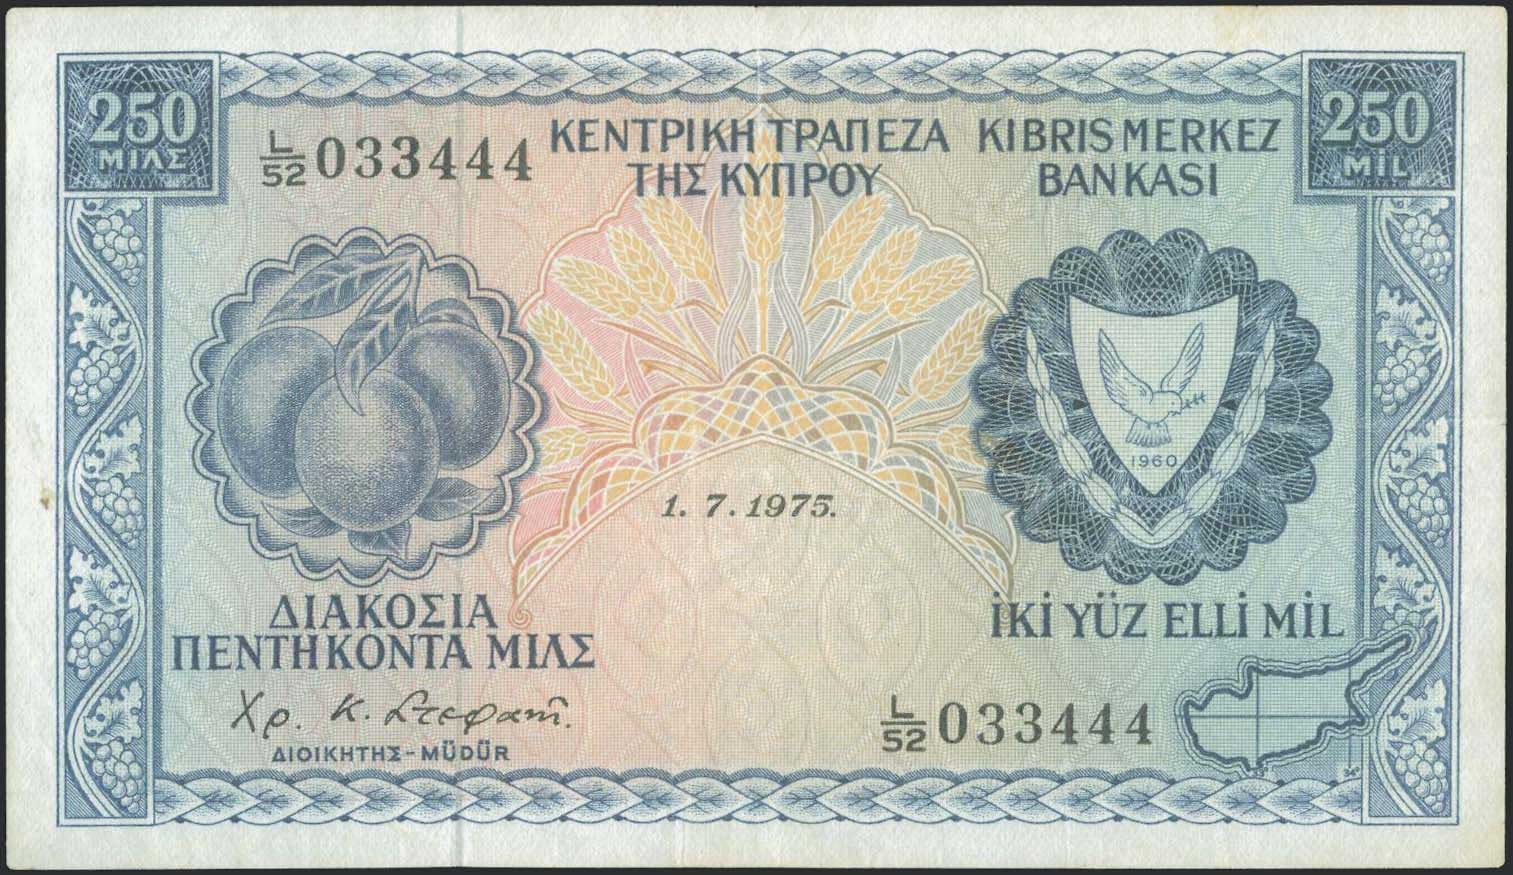 Lot 6358 - CYPRUS-  PAPER MONEY - BANKNOTES banknotes of cyprus -  A. Karamitsos Public & LIVE Bid Auction 588 Coins, Medals & Banknotes